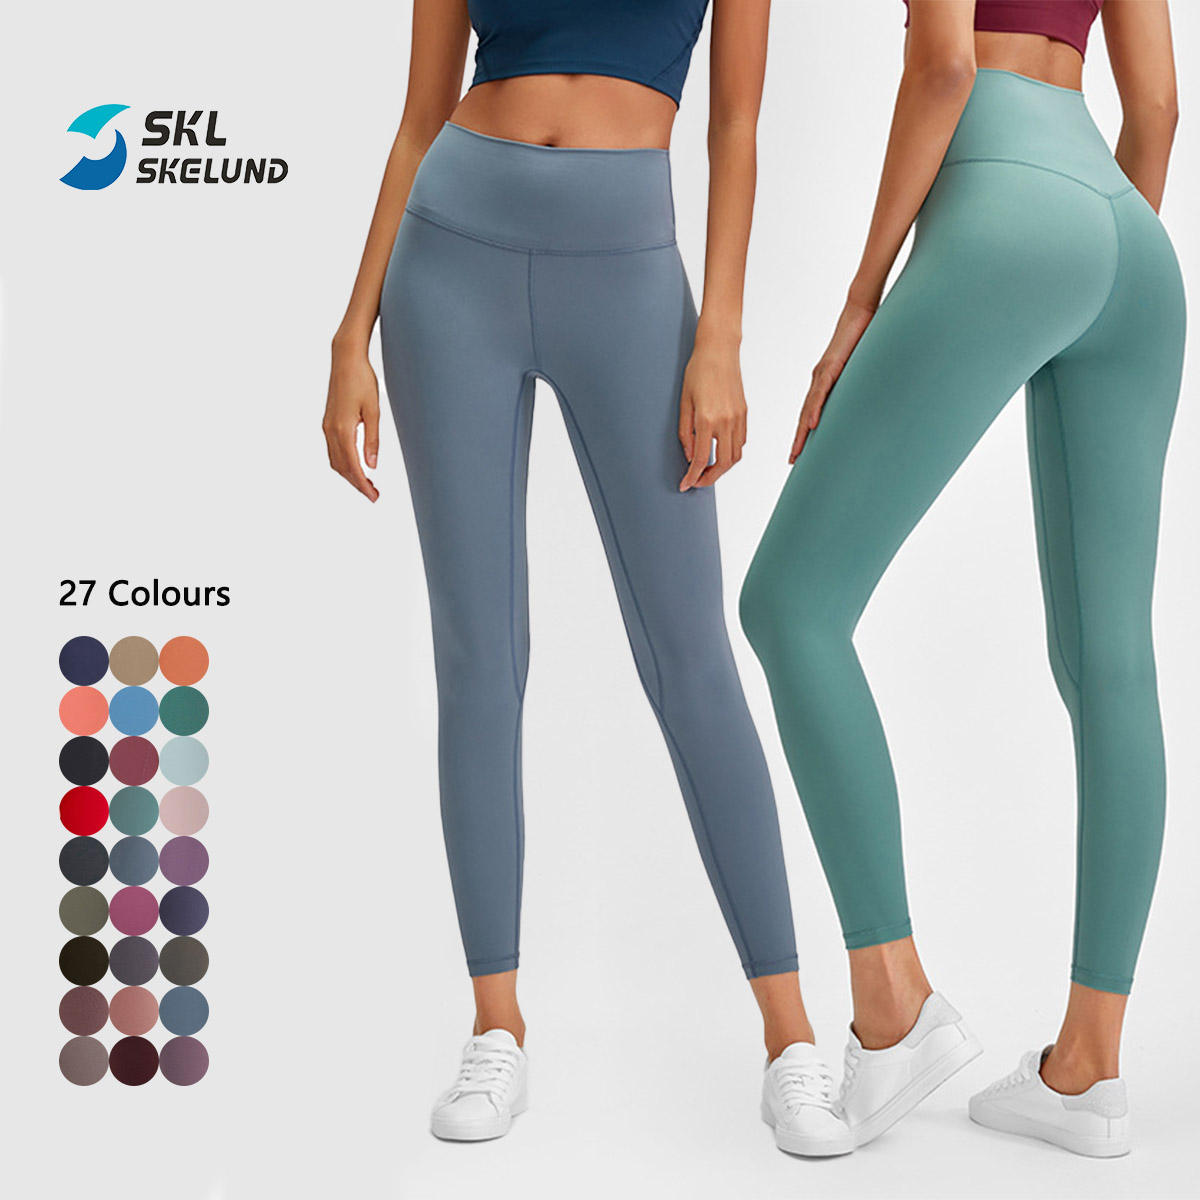 Wholesale High Quality Nylon Npandex Neon High Waist Breathable Fitness Leggings Sexy Yoga Pants With Pockets For Women